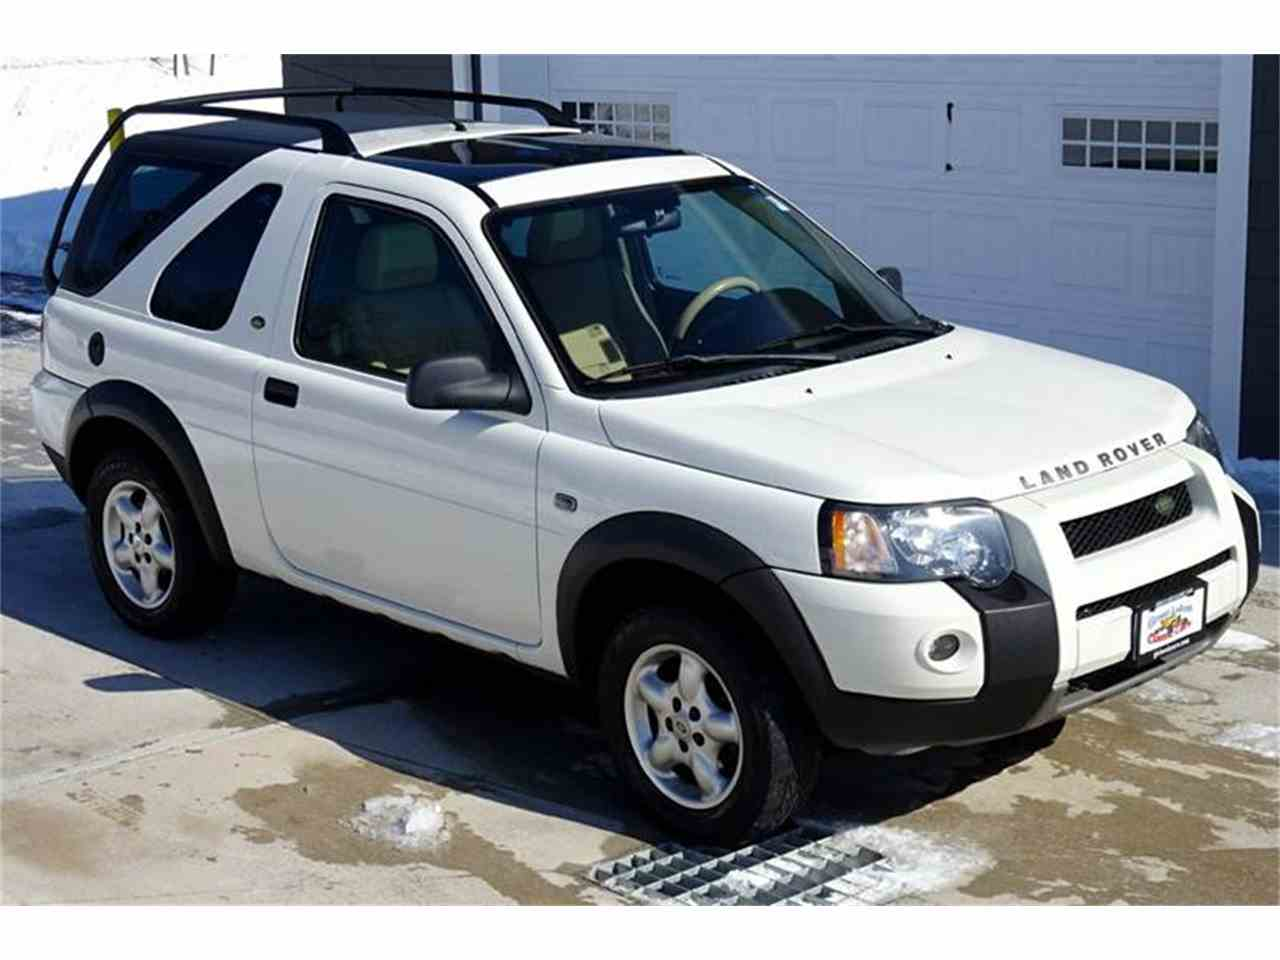 2004 land rover freelander for sale cc. Black Bedroom Furniture Sets. Home Design Ideas